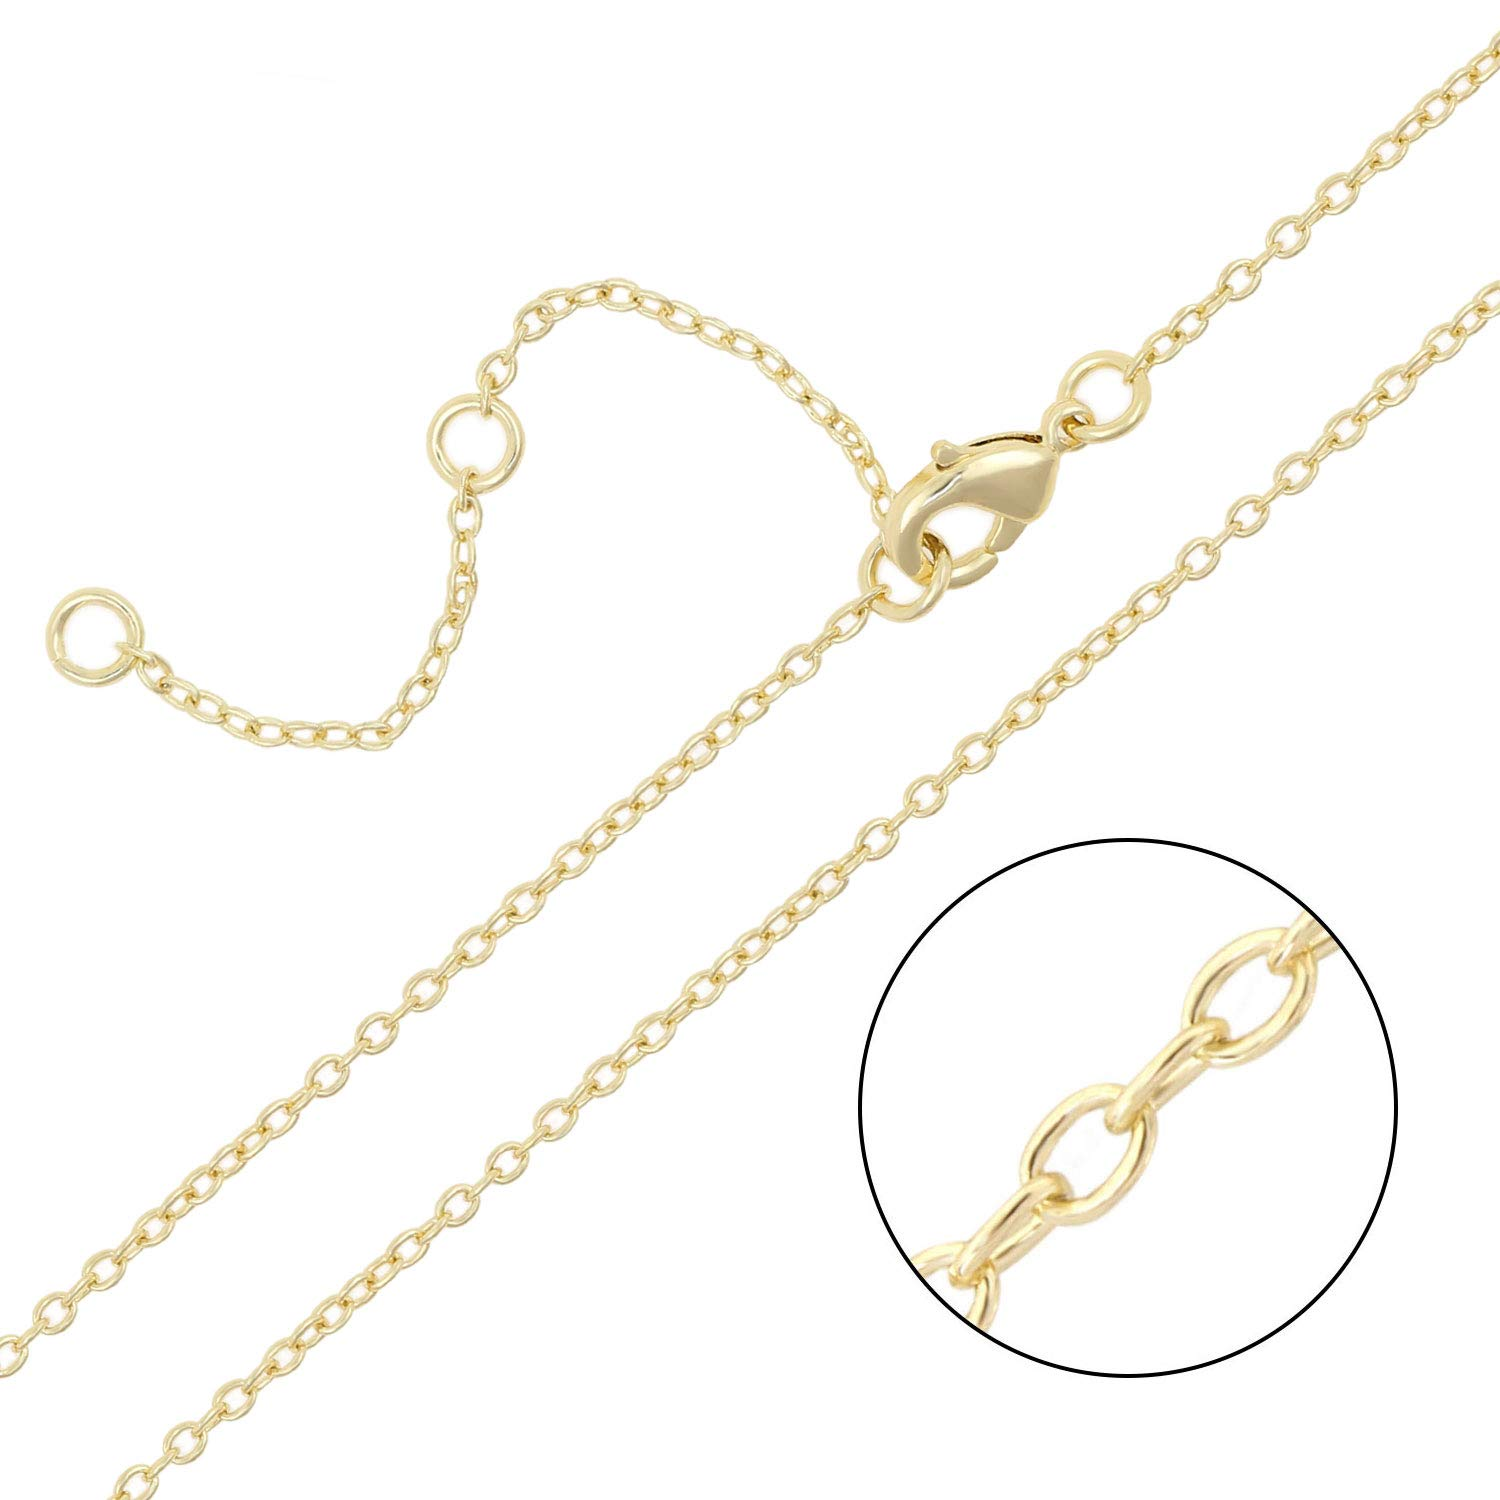 3027a1d7dcc89 Wholesale 12 PCS 1.5MM Gold Plated Solid Brass O Chains with Extension  Chains Adjustable Bulk for Jewelry Making (16-18 inch)